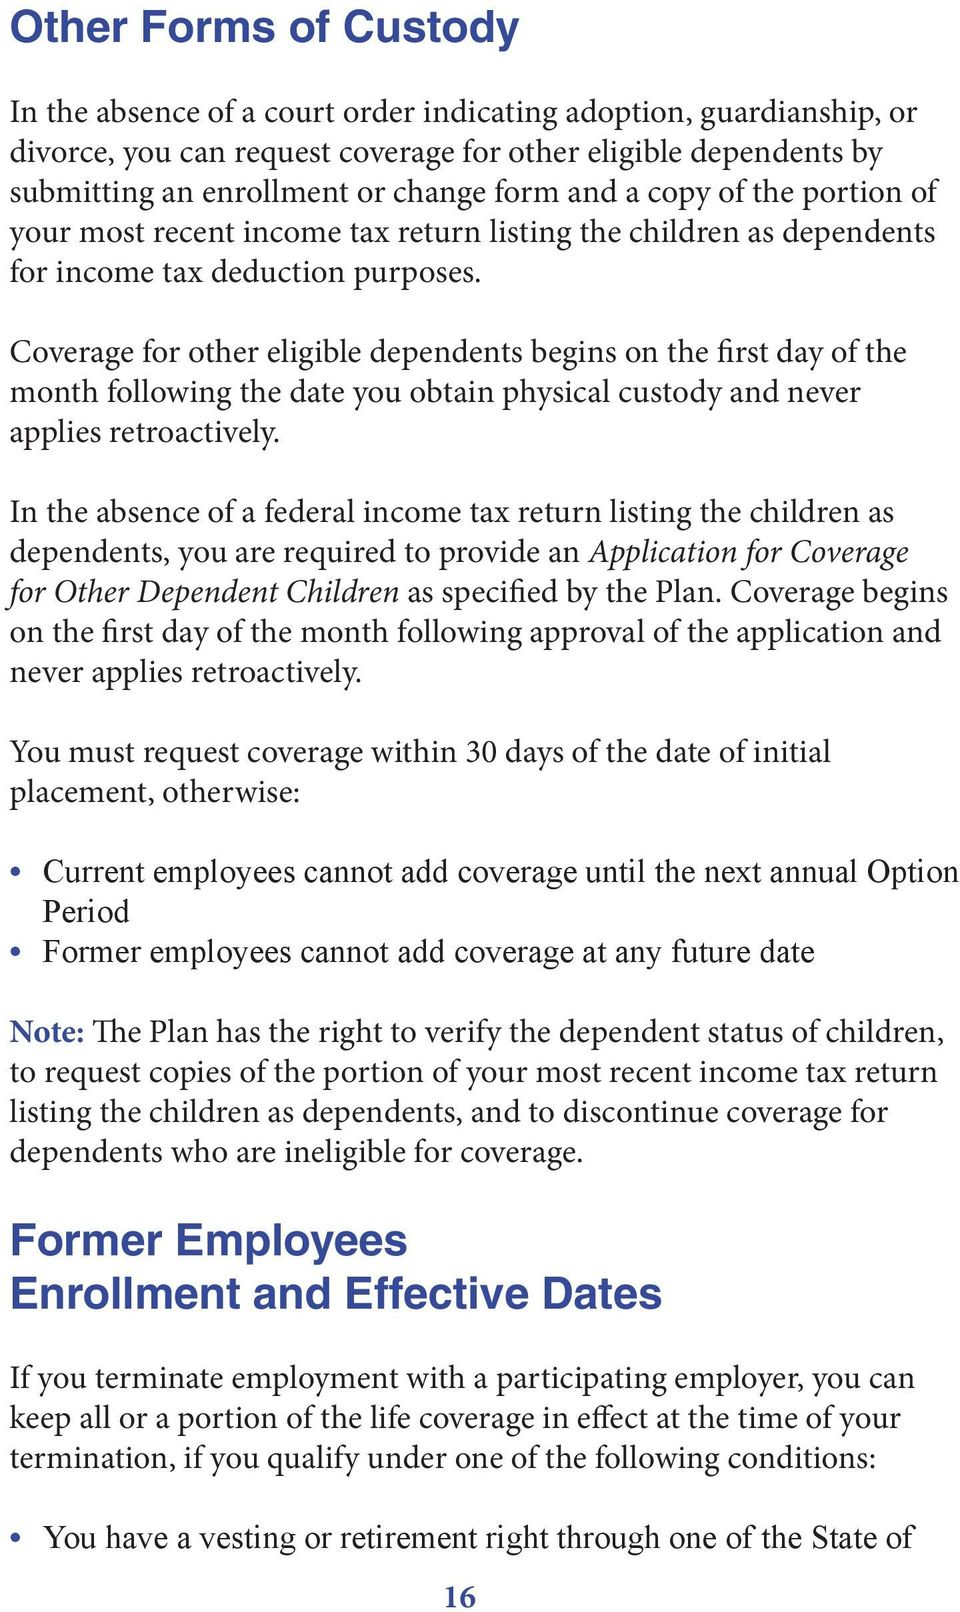 Coverage for other eligible dependents begins on the first day of the month following the date you obtain physical custody and never applies retroactively.